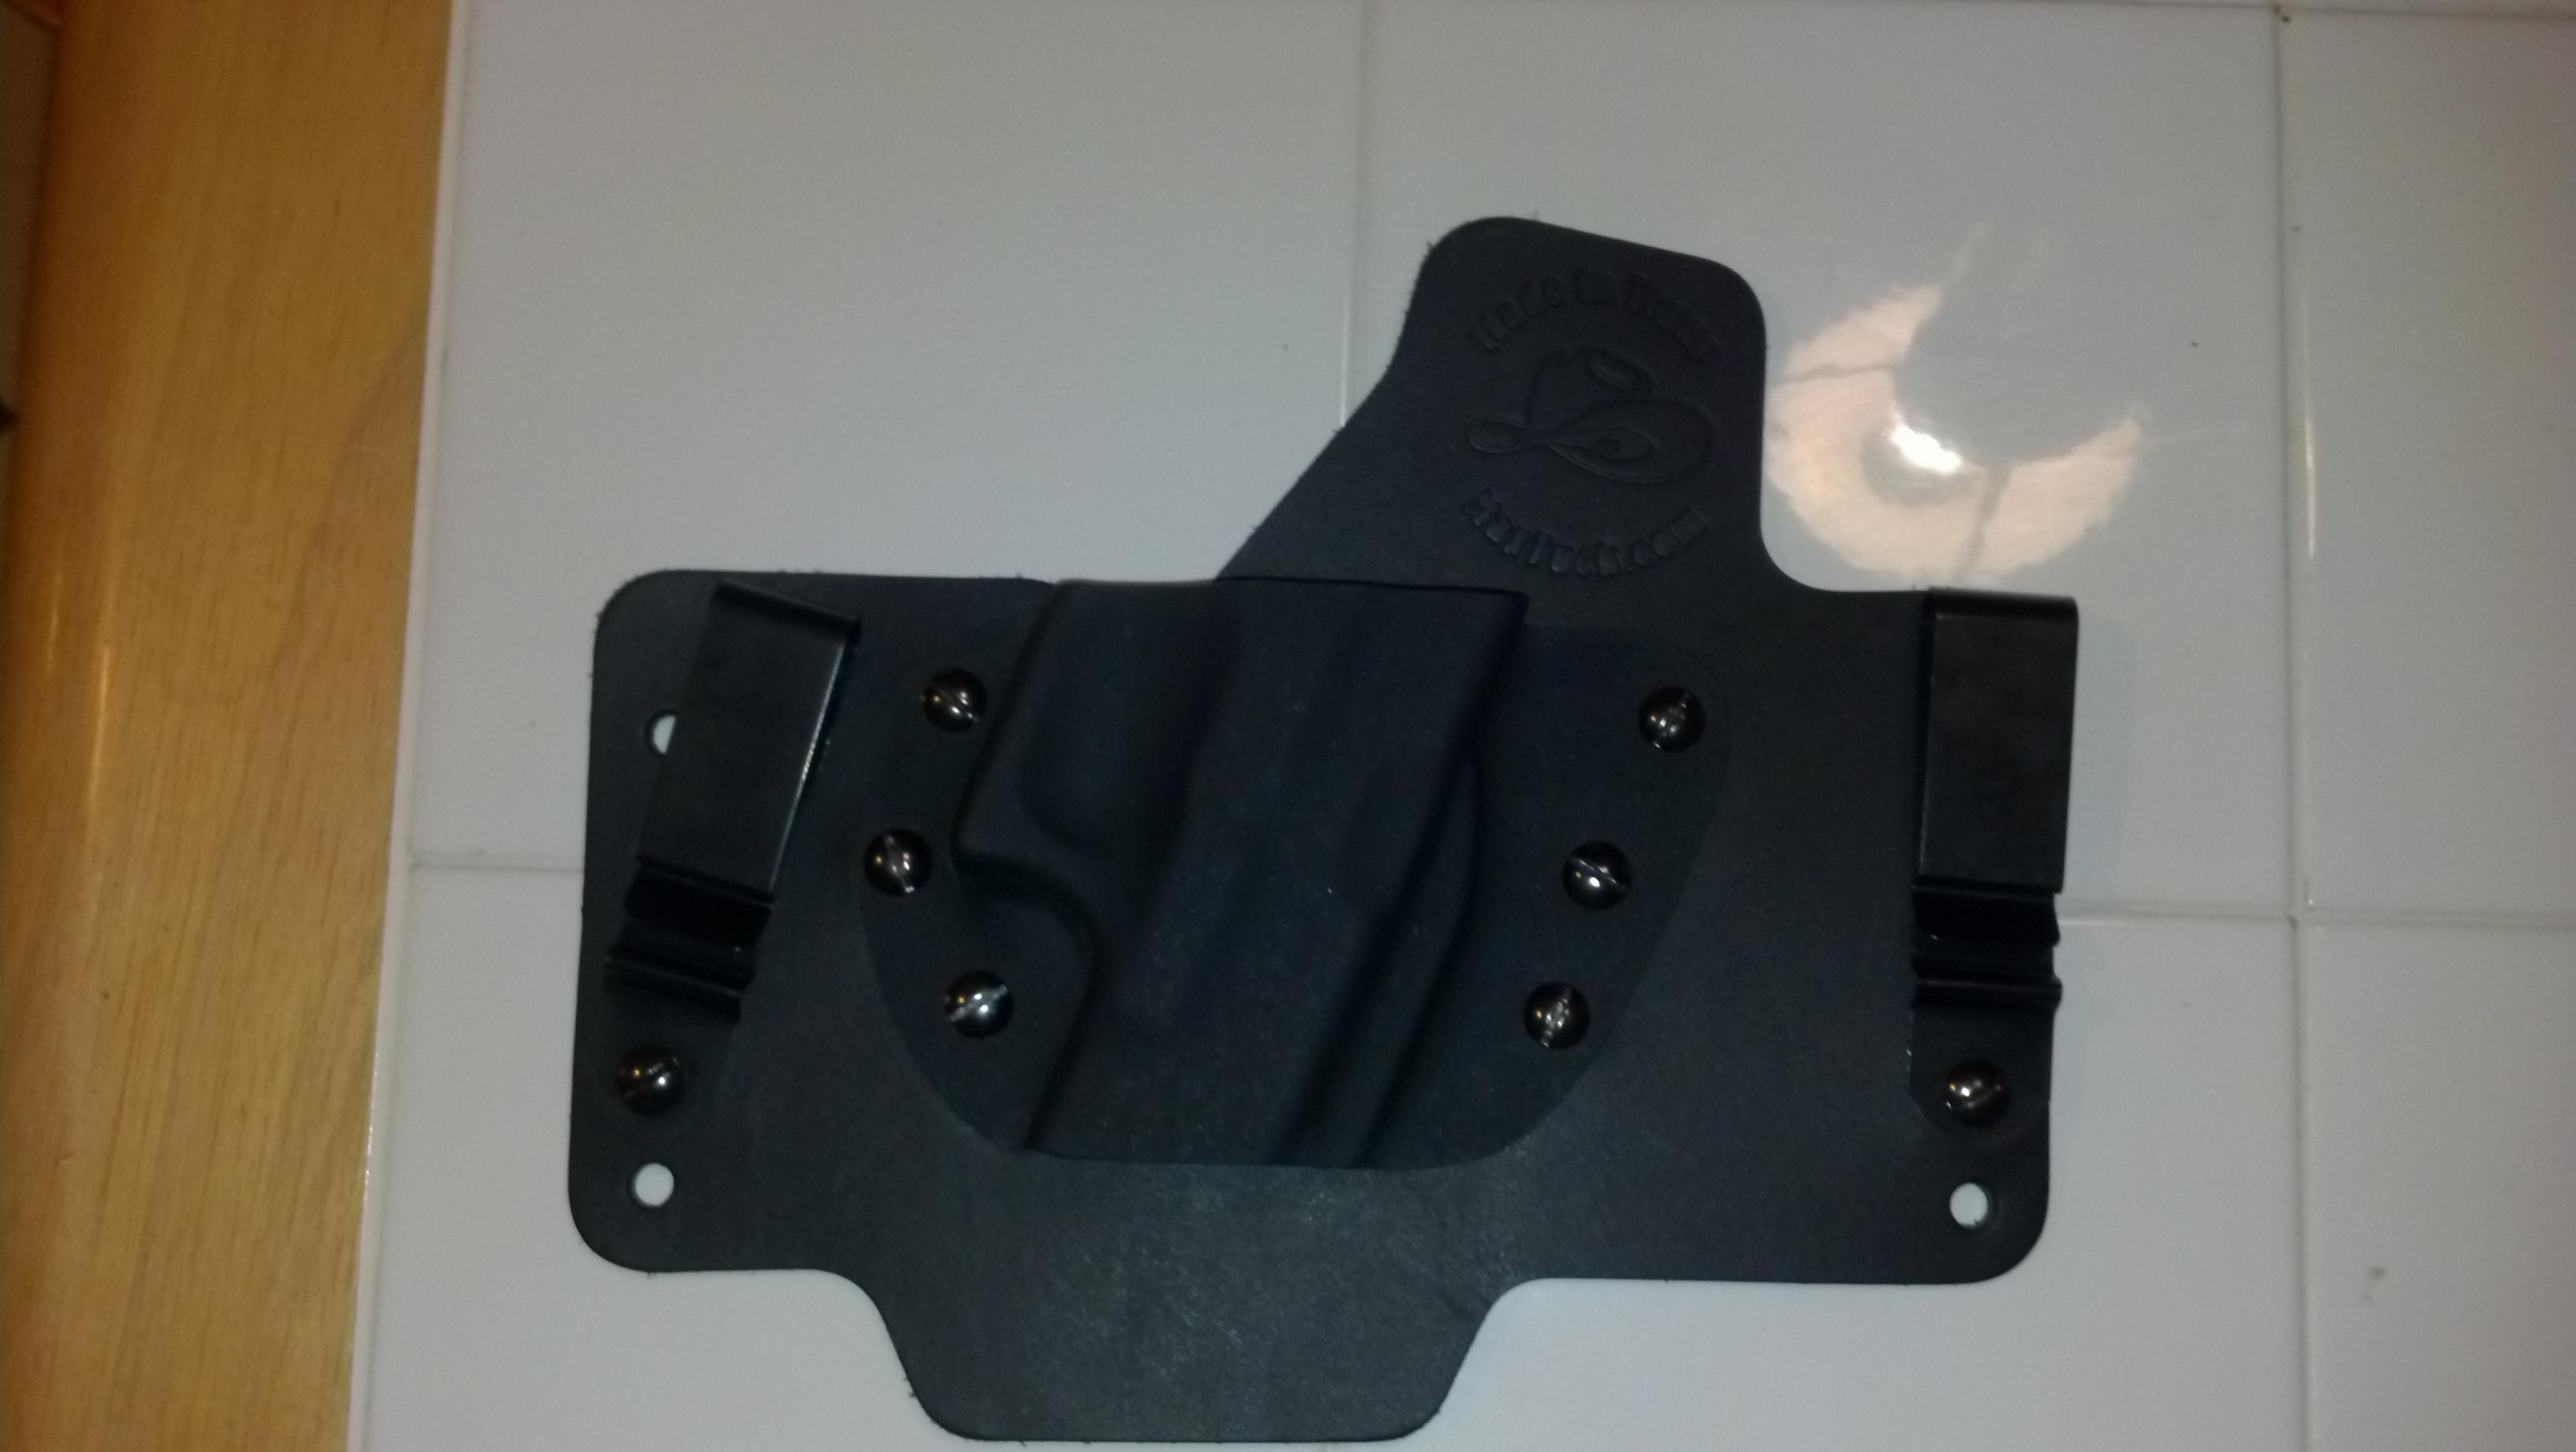 White Hat Holster came in..-image.jpg